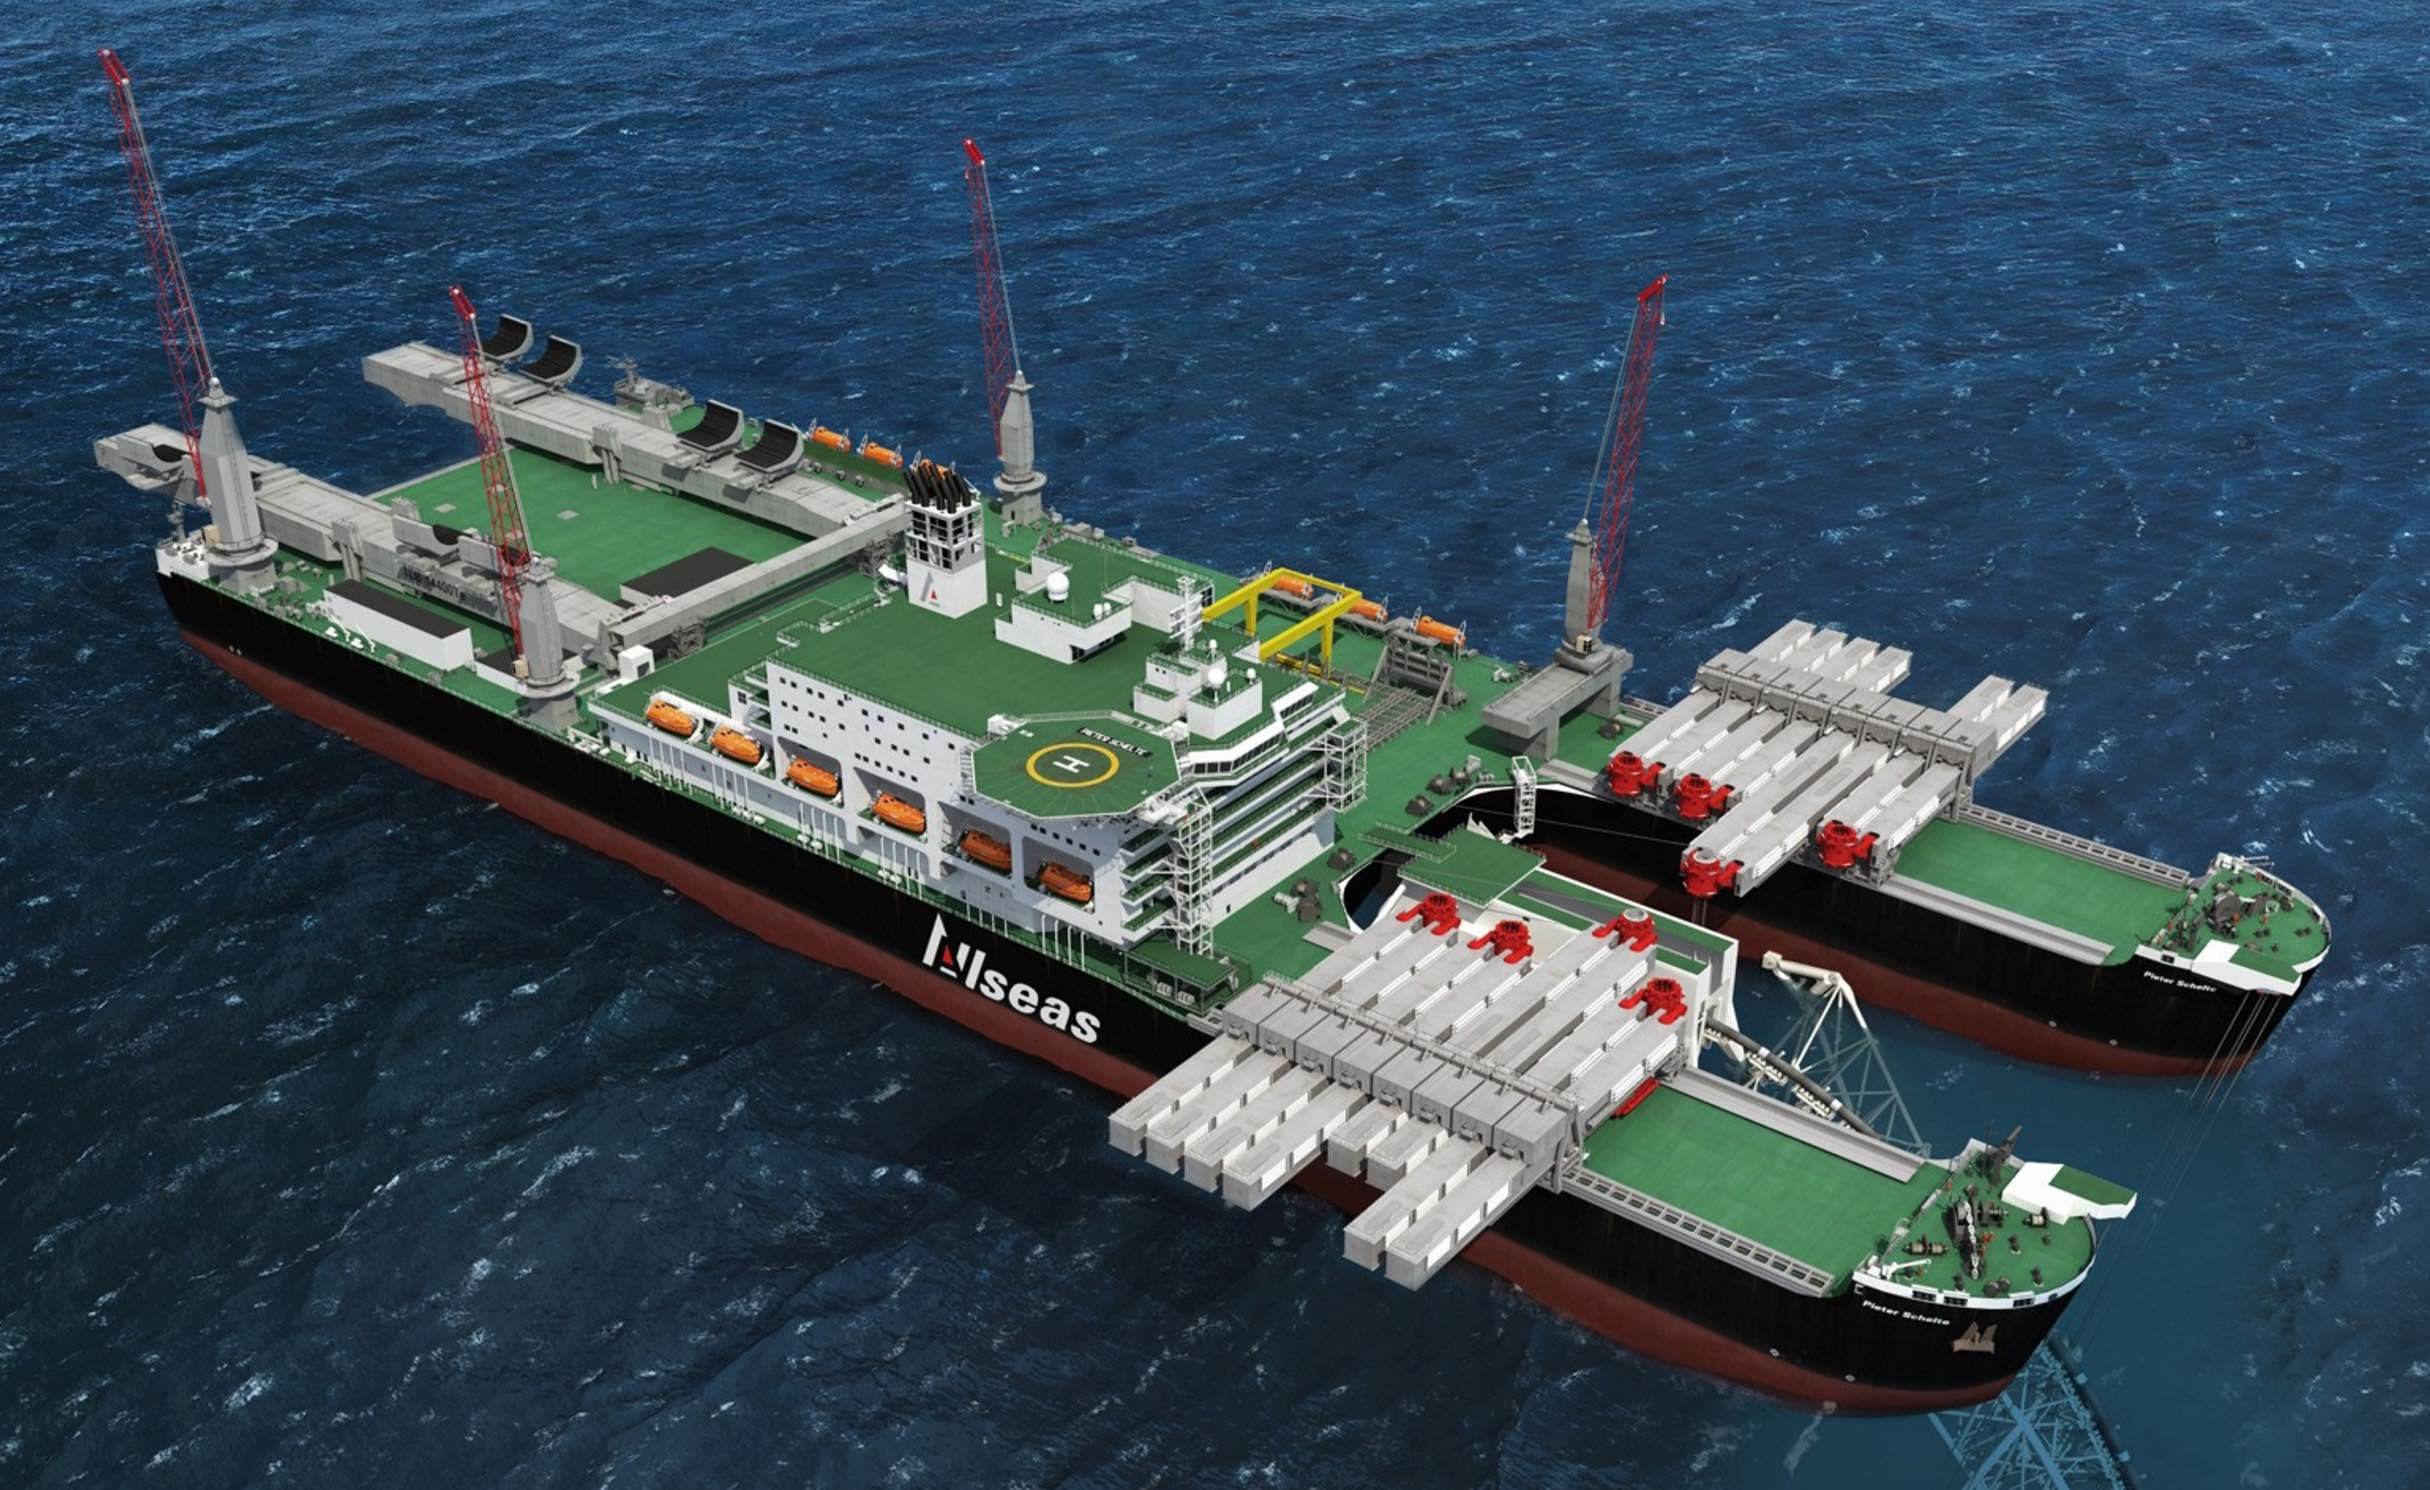 Allseas – crane control under the microscope